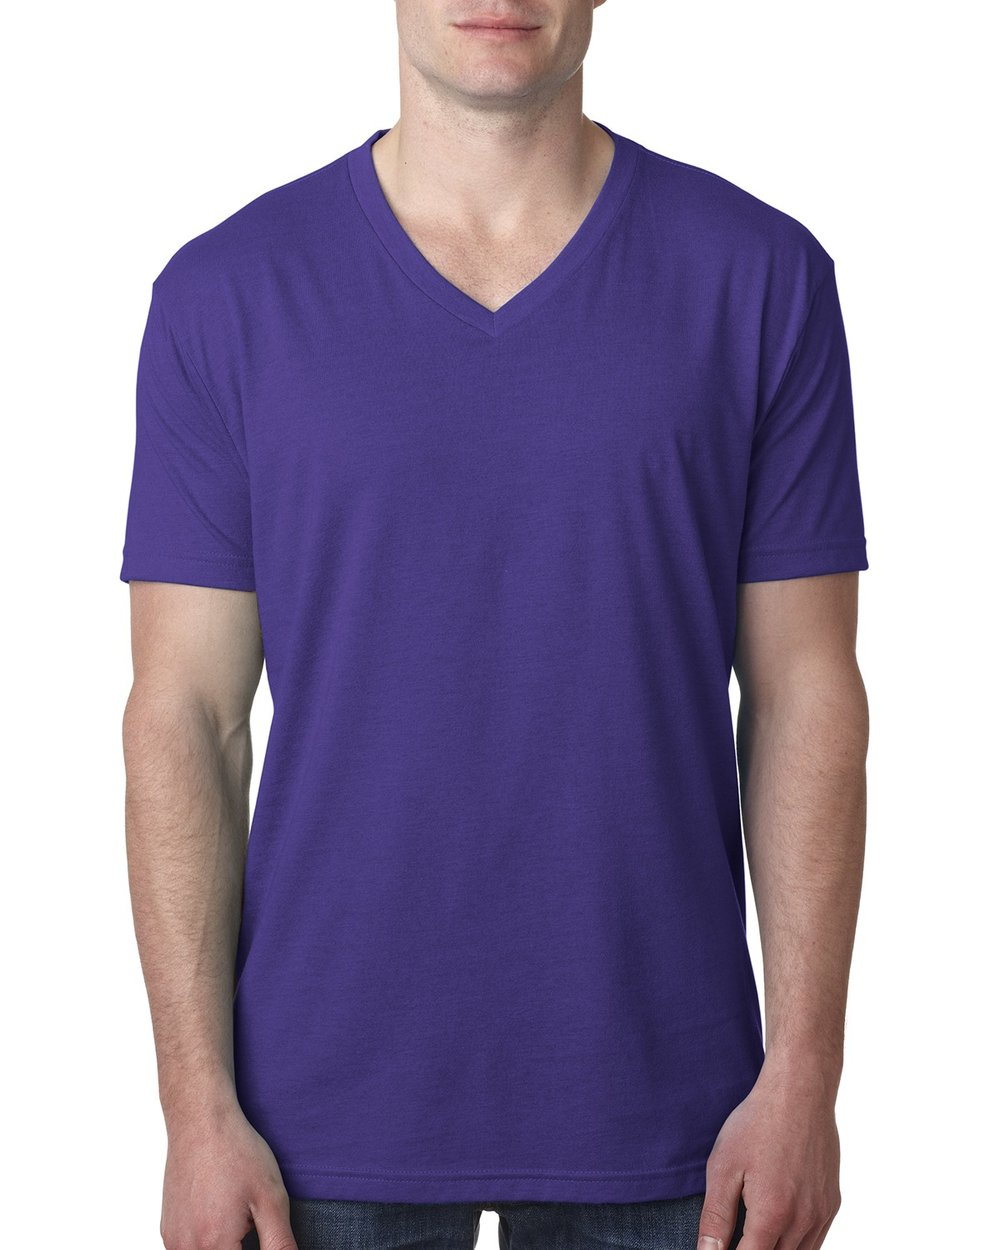 Next Level V-Neck #6240